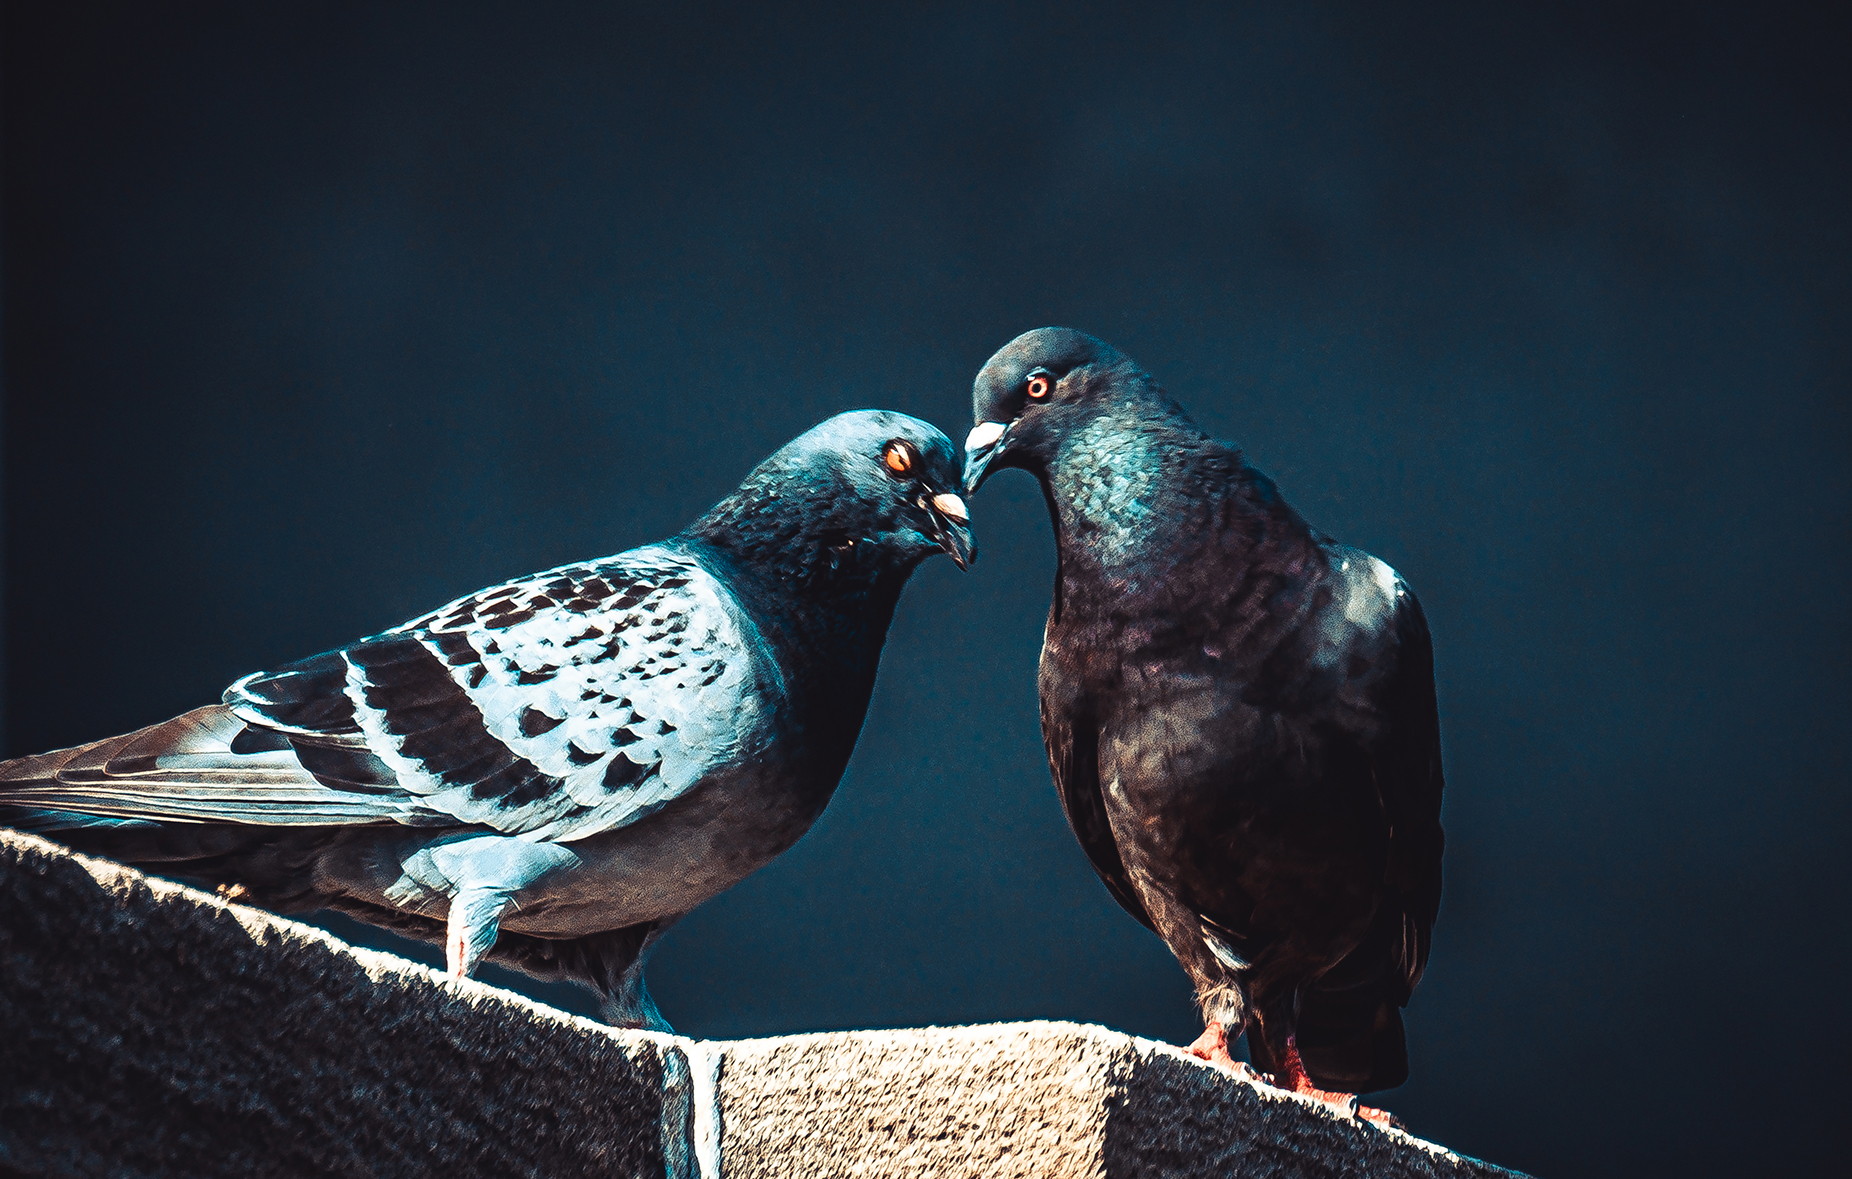 Pigeon Kiss, Just A Peck.  by Stephen Geisel, Love-fi